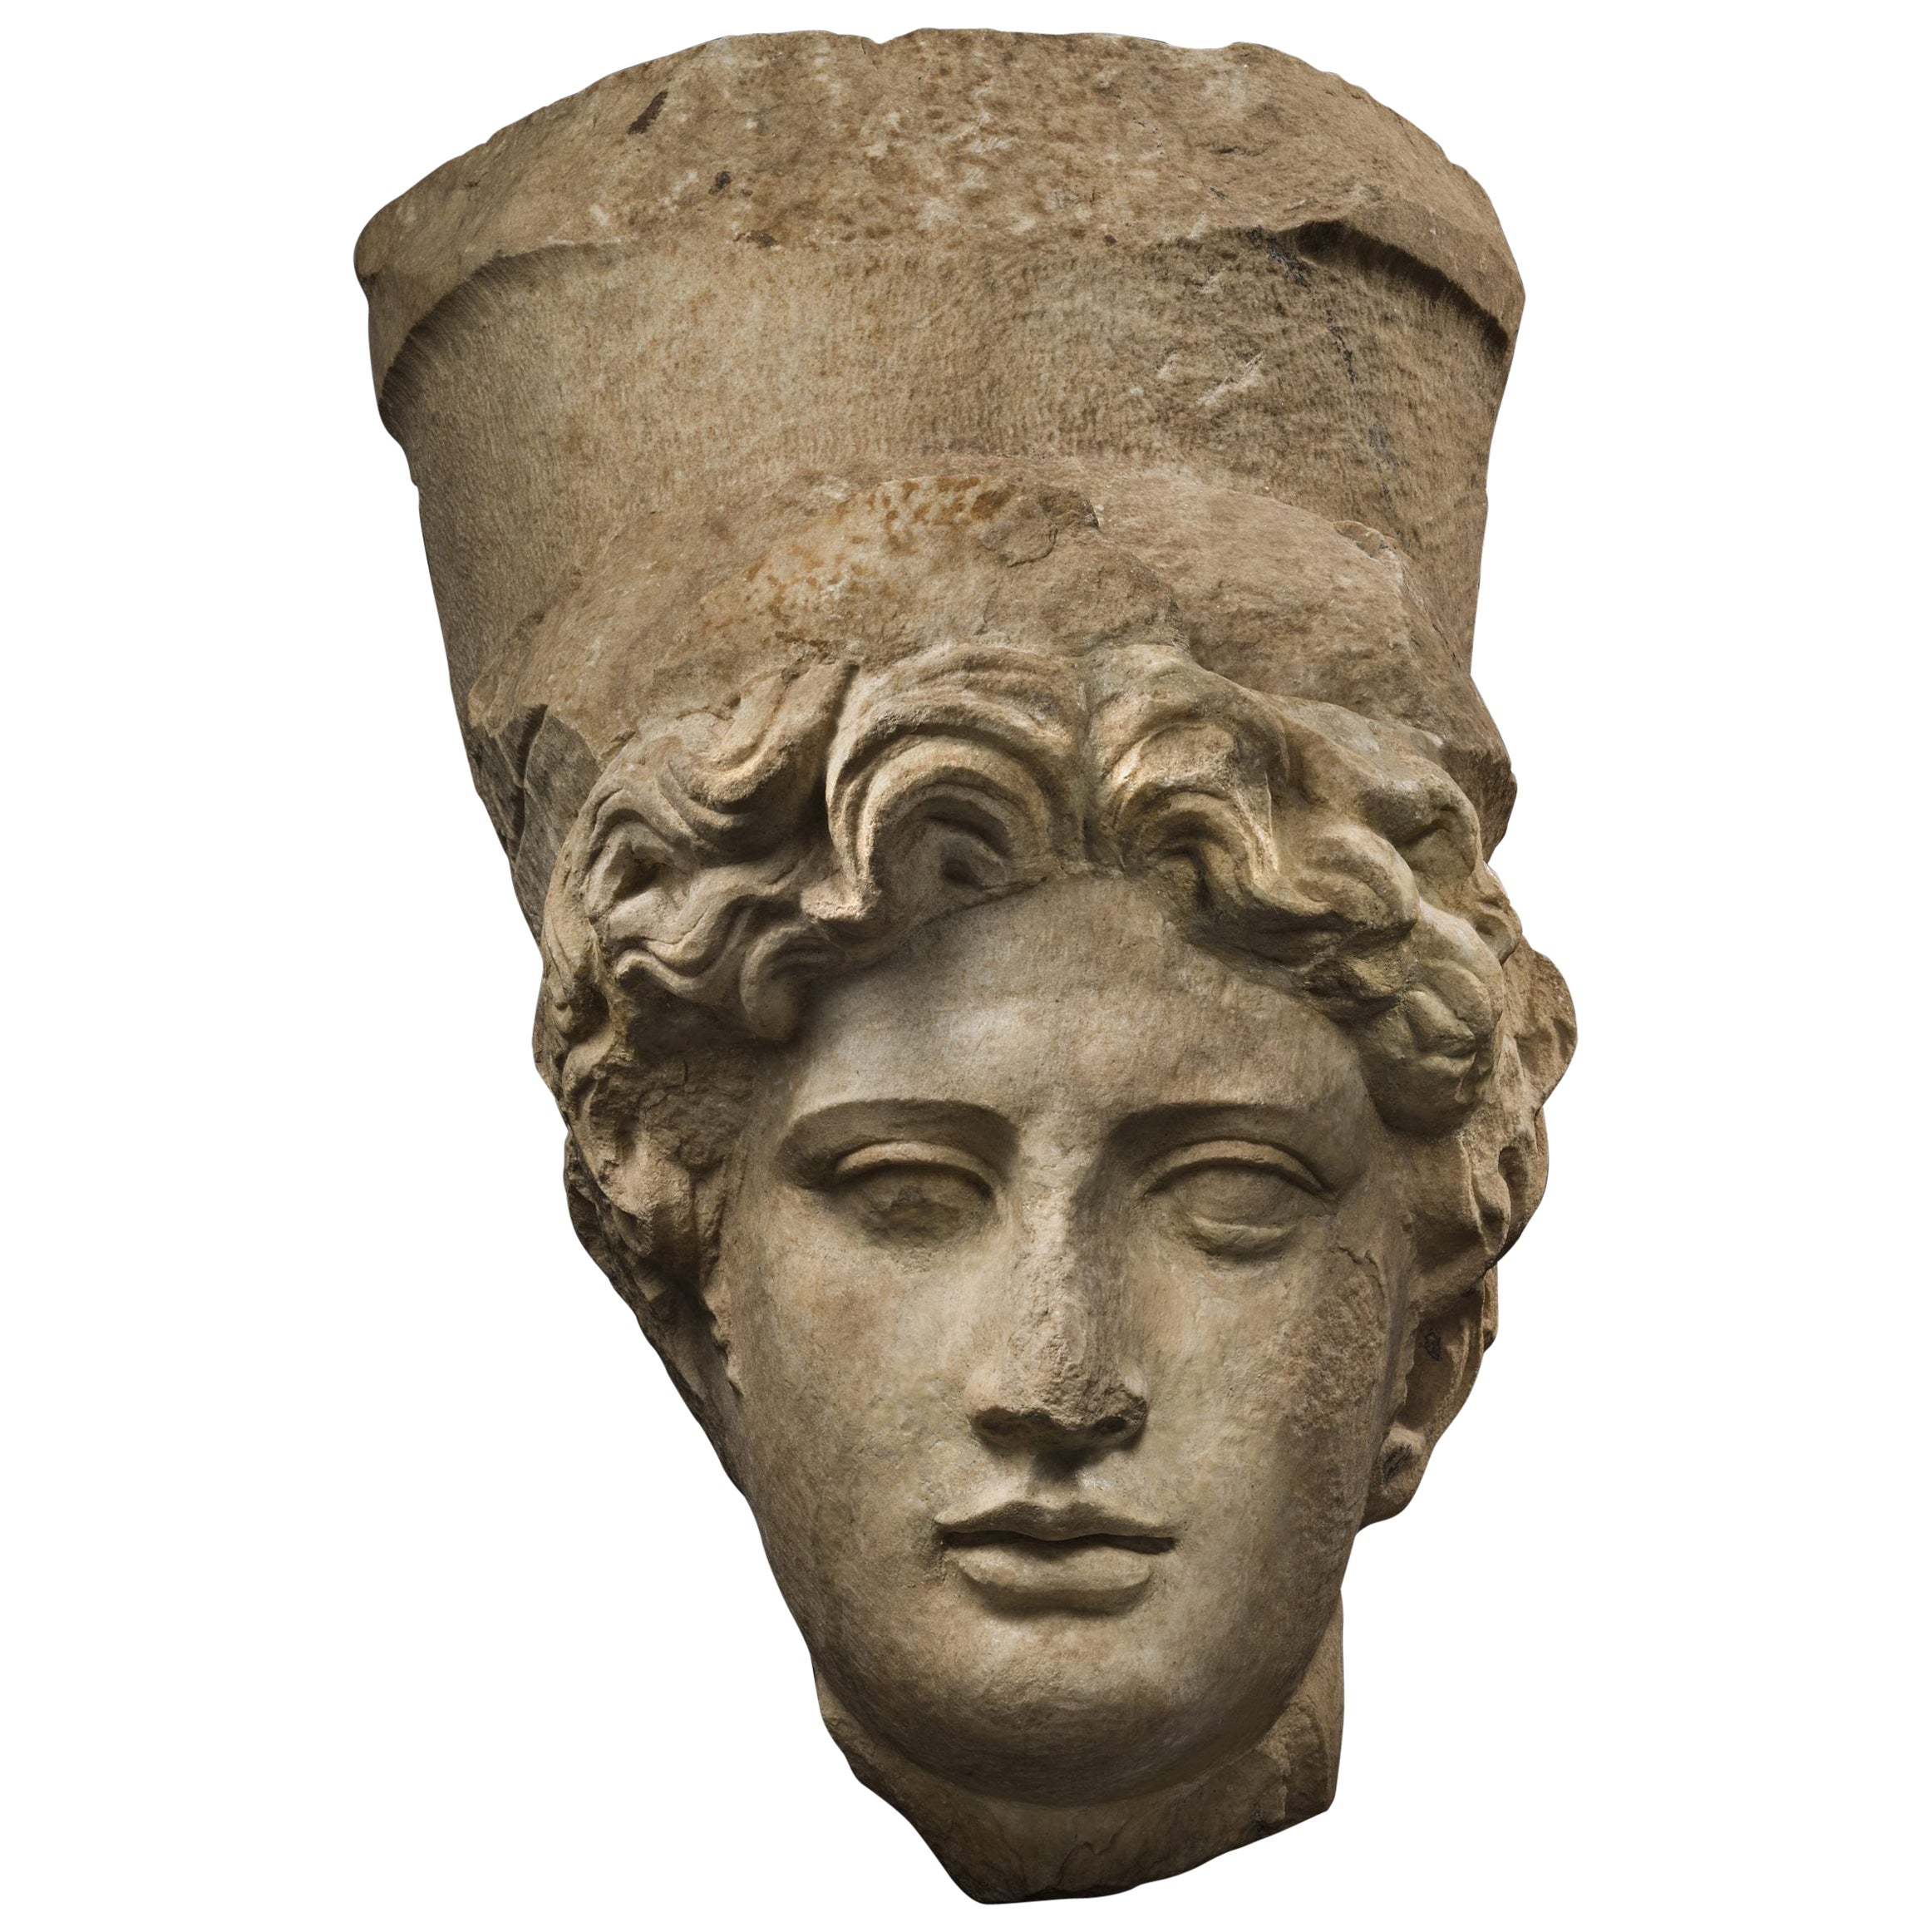 Collosal Roman Marble Head of Tyche 'Fortuna', 1st Century A.D., Provenance